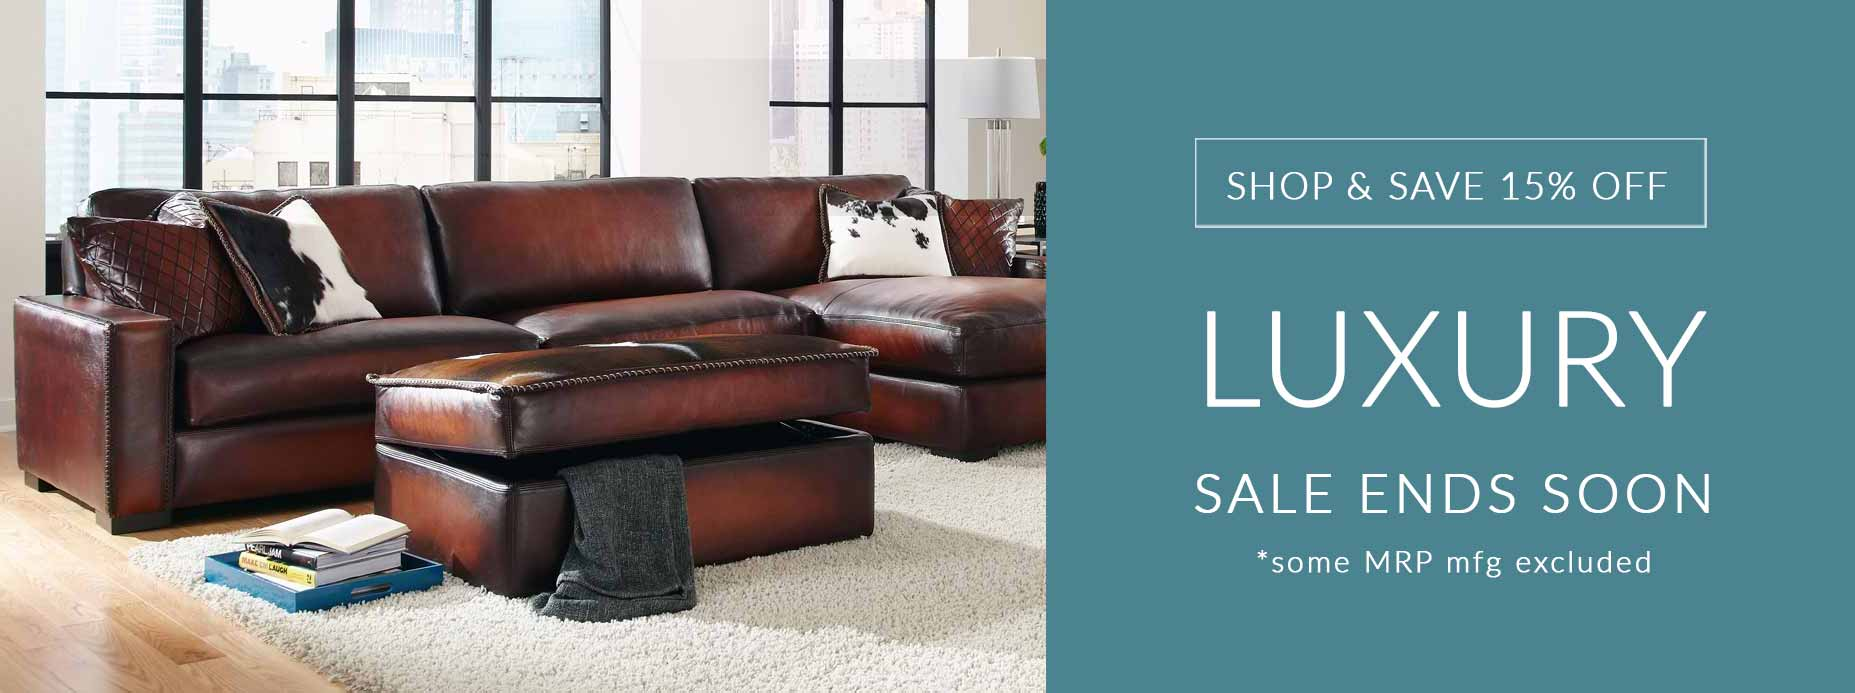 Eleanor Rigby Home Leather Sofa